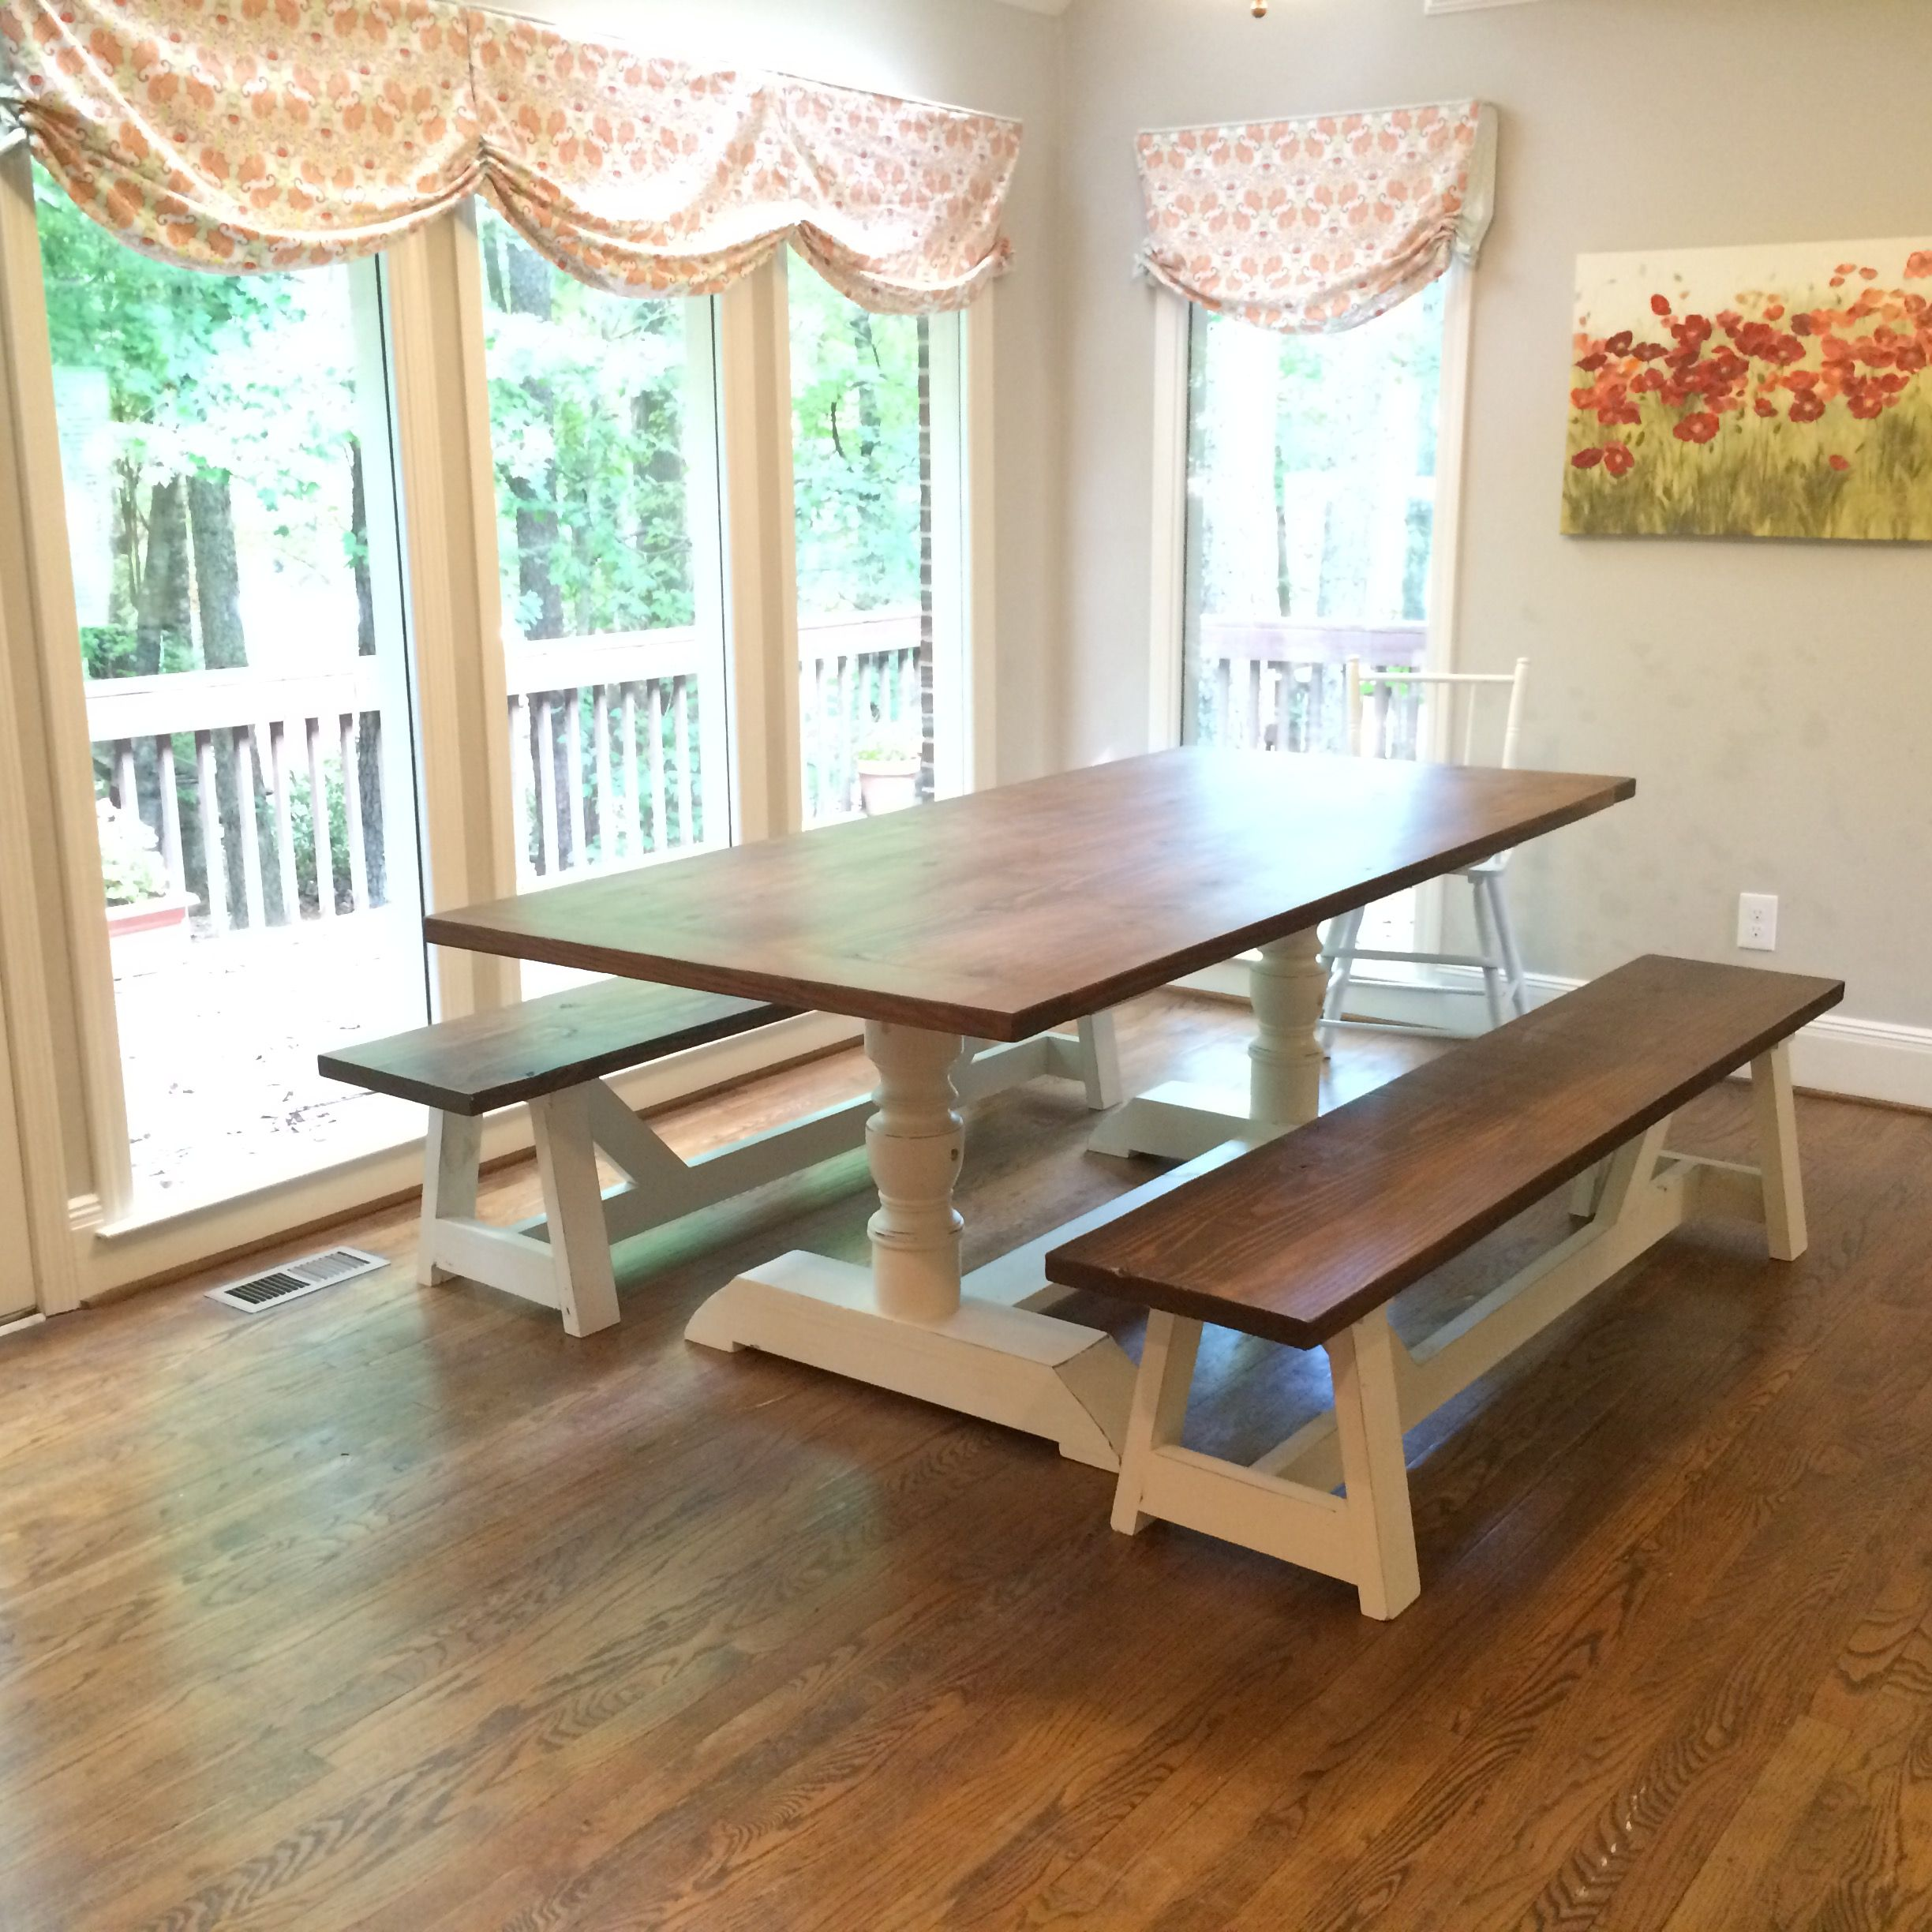 Custom Built Dining Room Tables: Hand Made Pedestal Style Farmhouse Dining Room Table By